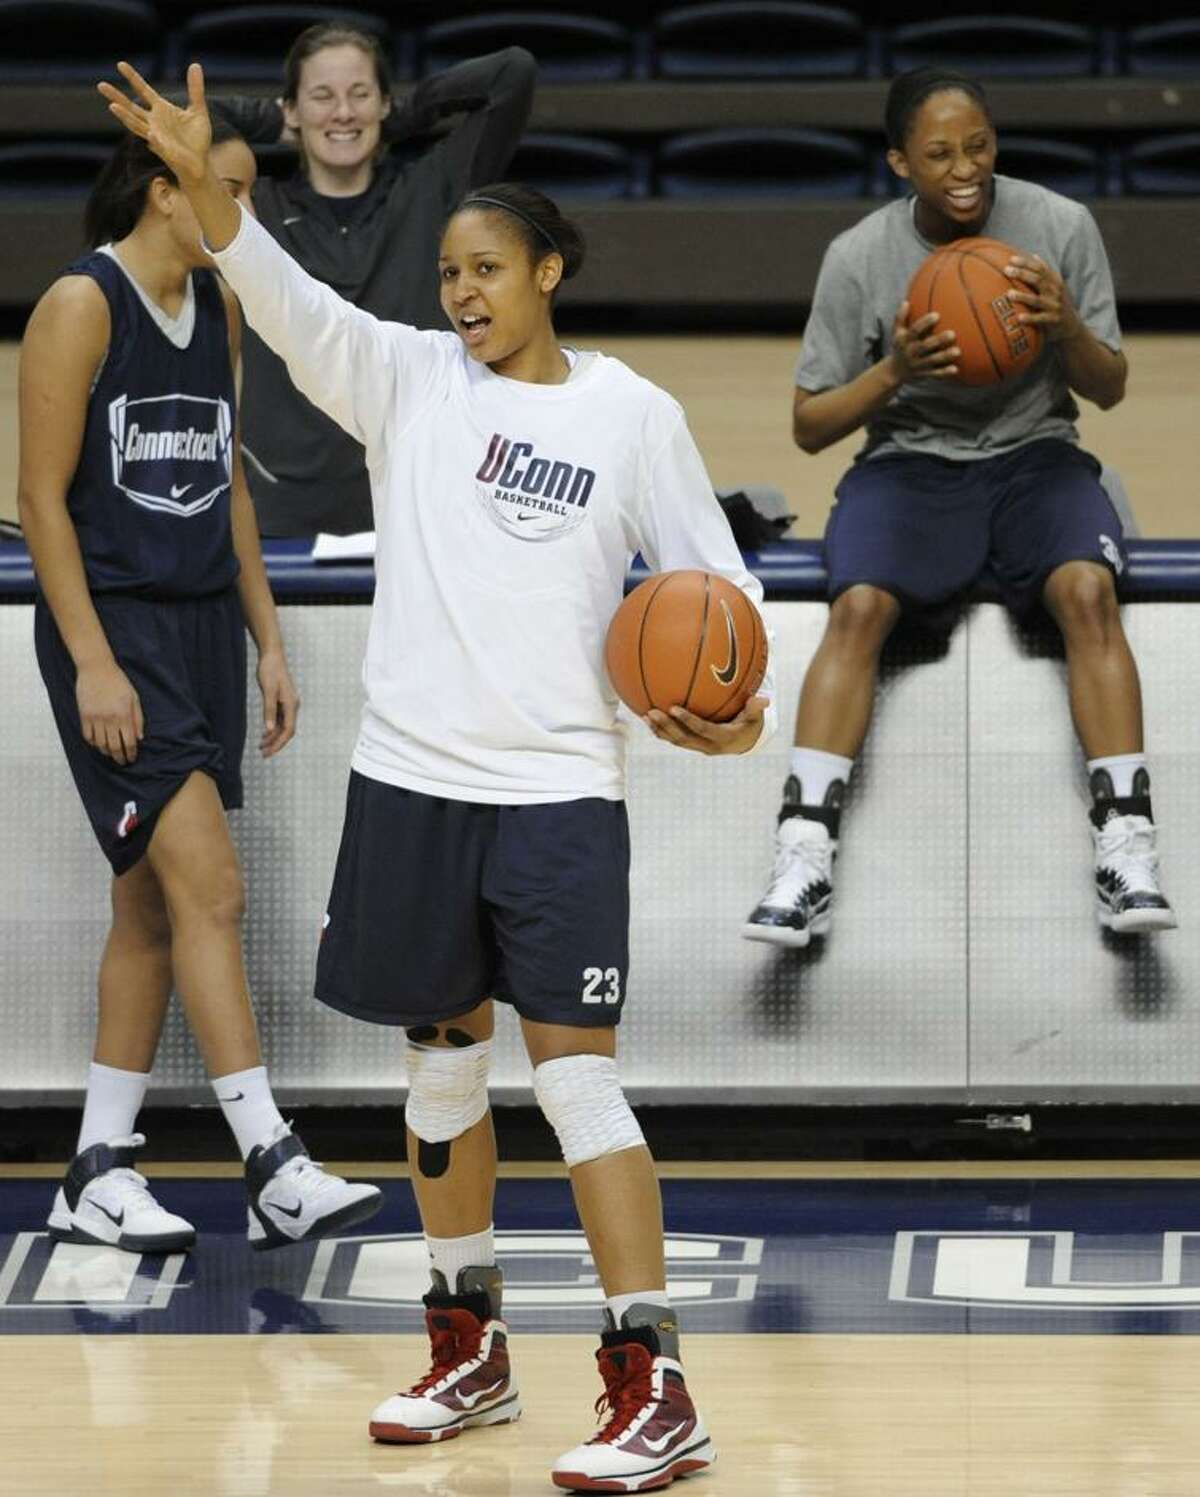 **HOLD FOR STORY BY DOUG FEINBERG** In this March 3, 2011 photo, Maya Moore, center, shares a light moment with teammate Lorin Dixon, right, during practice at the University of Connecticut in Storrs, Conn. (AP Photo/Jessica Hill)